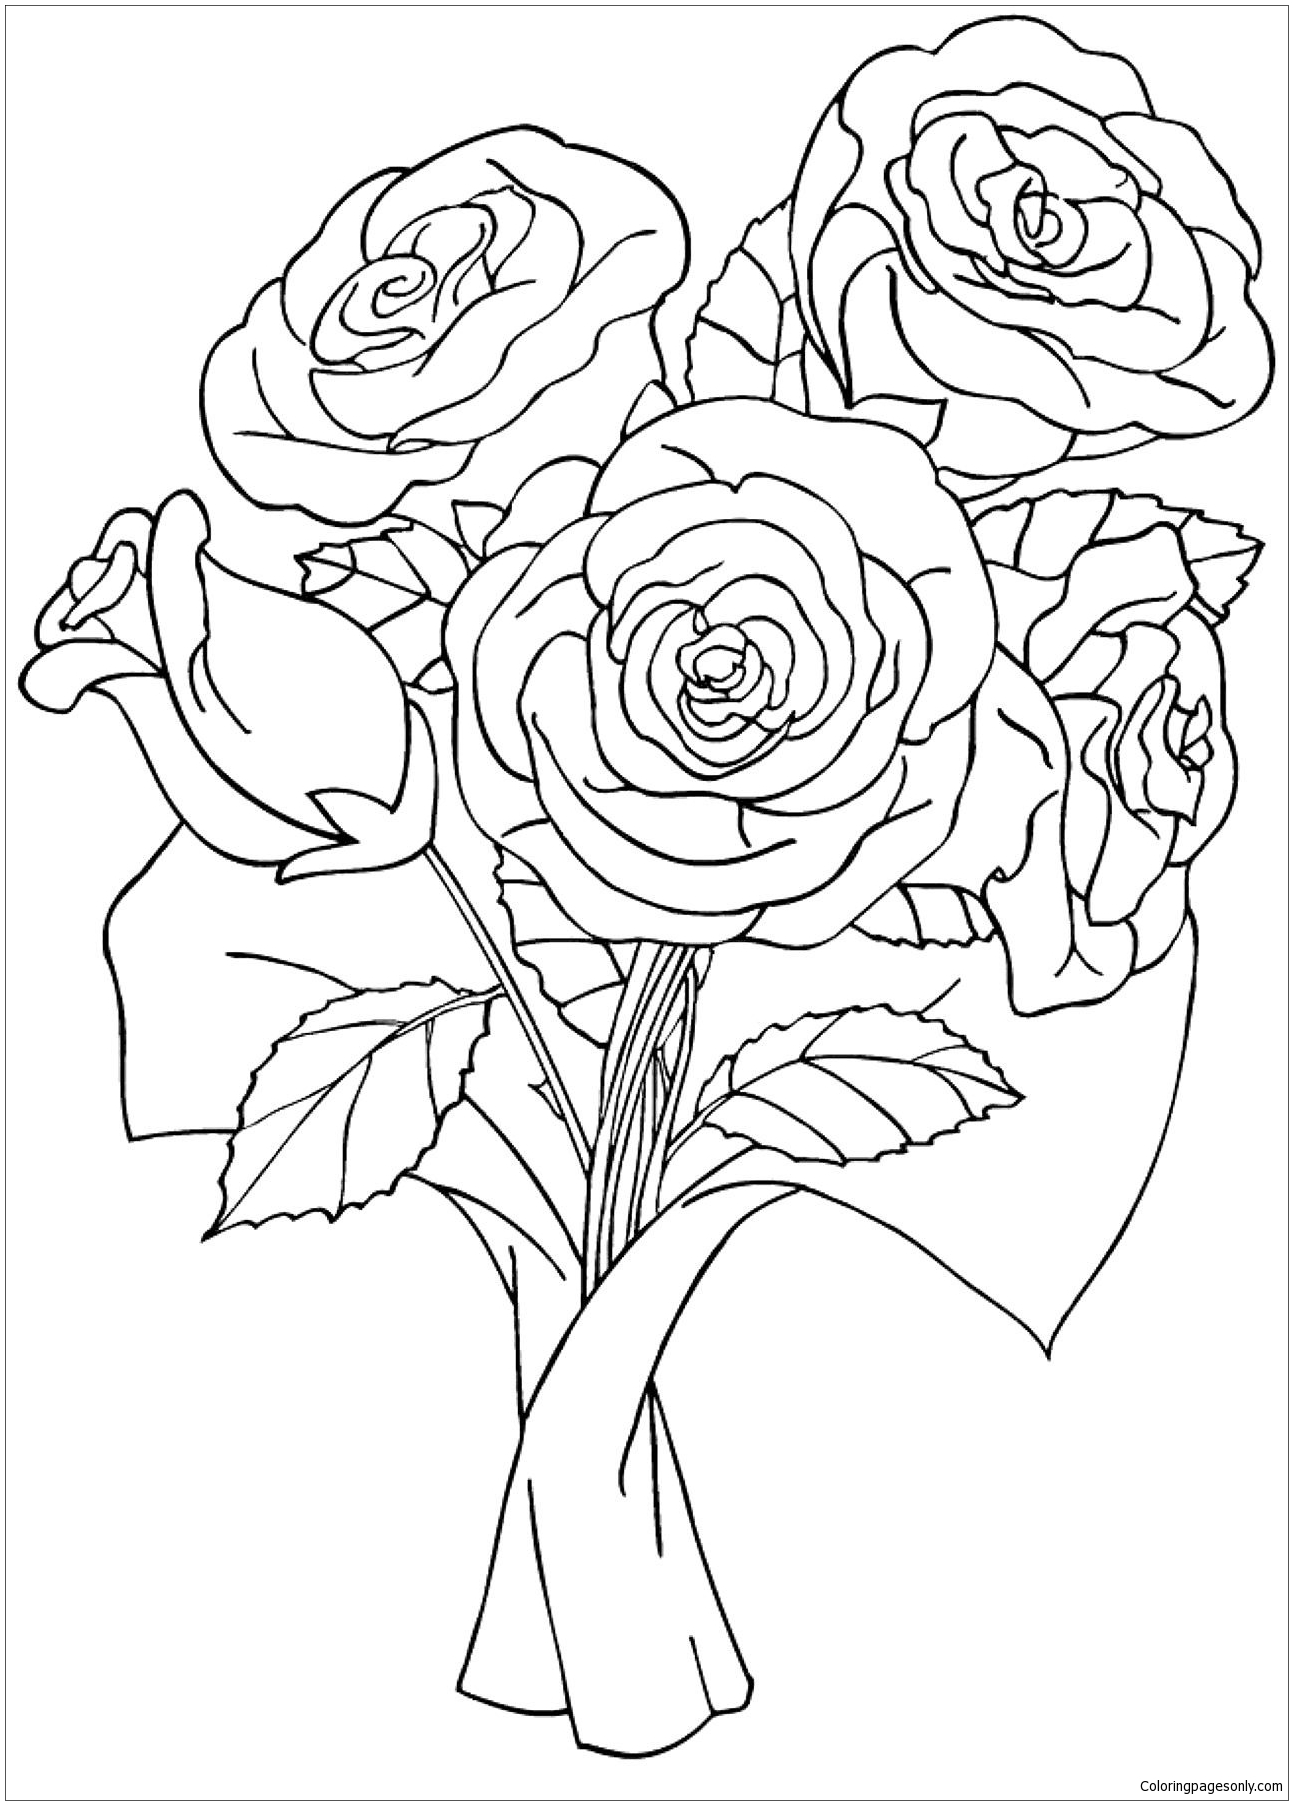 coloring pages rose roses flower coloring page free coloring pages online coloring pages rose